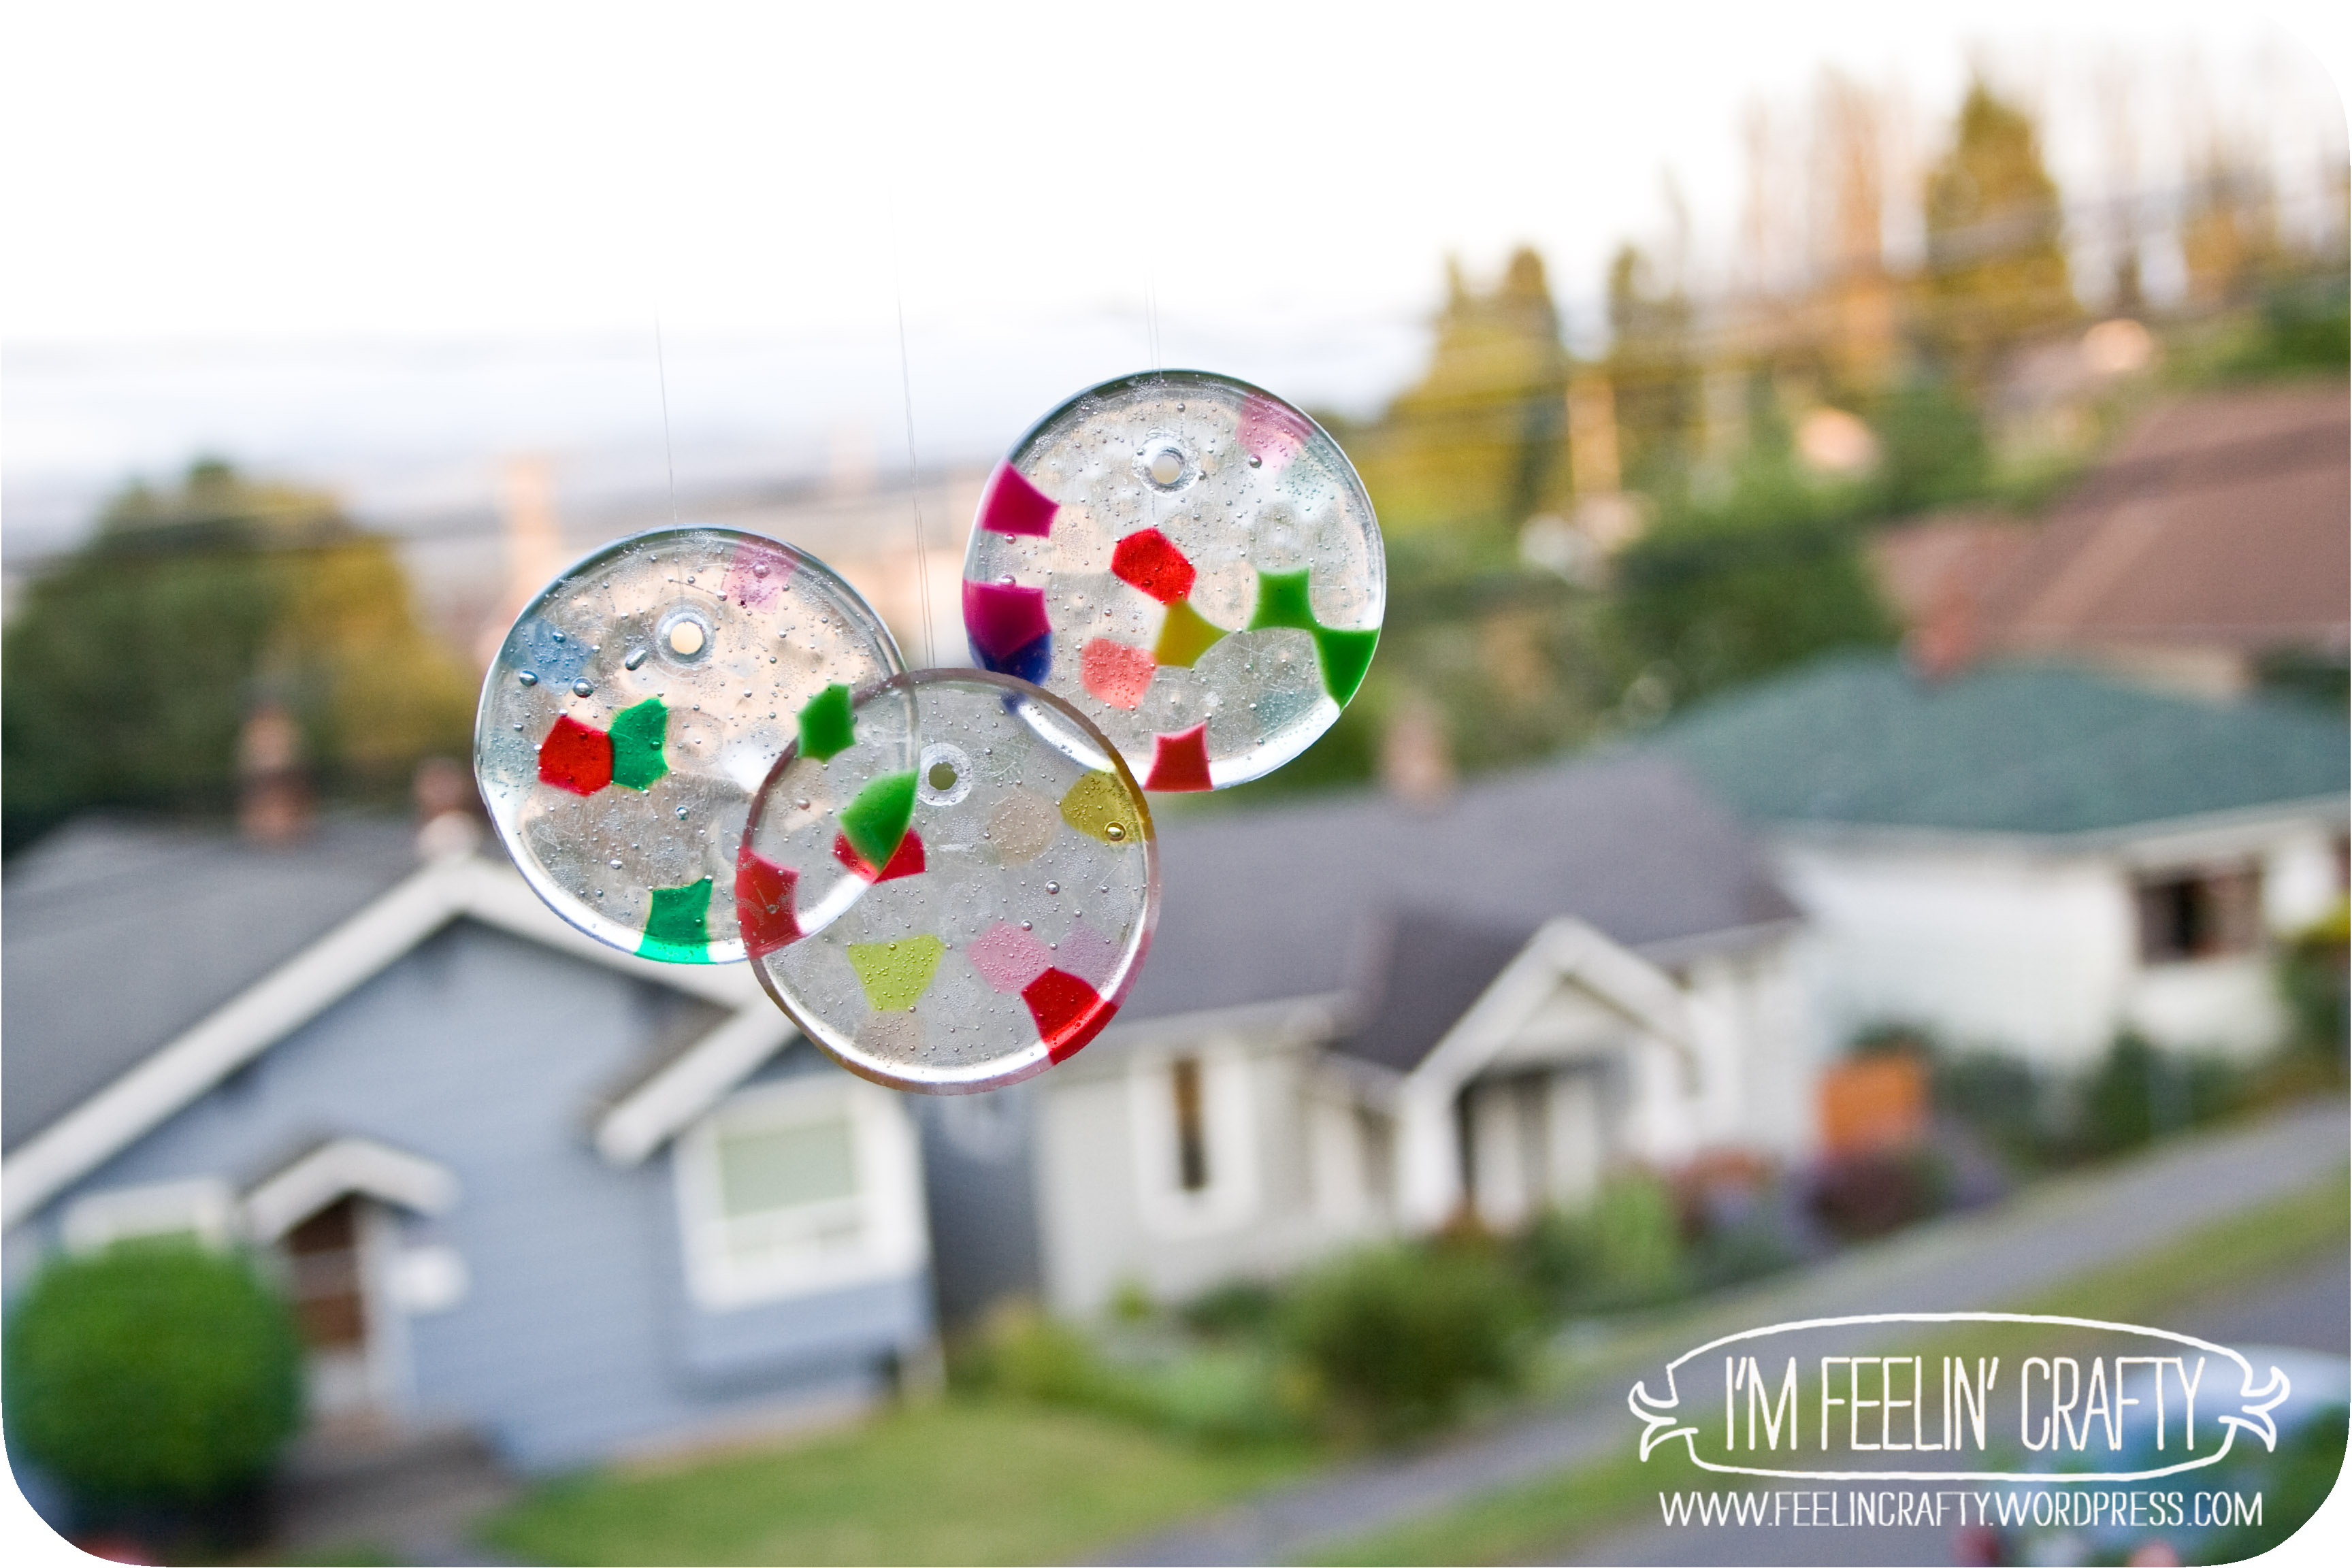 How To Make Melted Bead Crafts